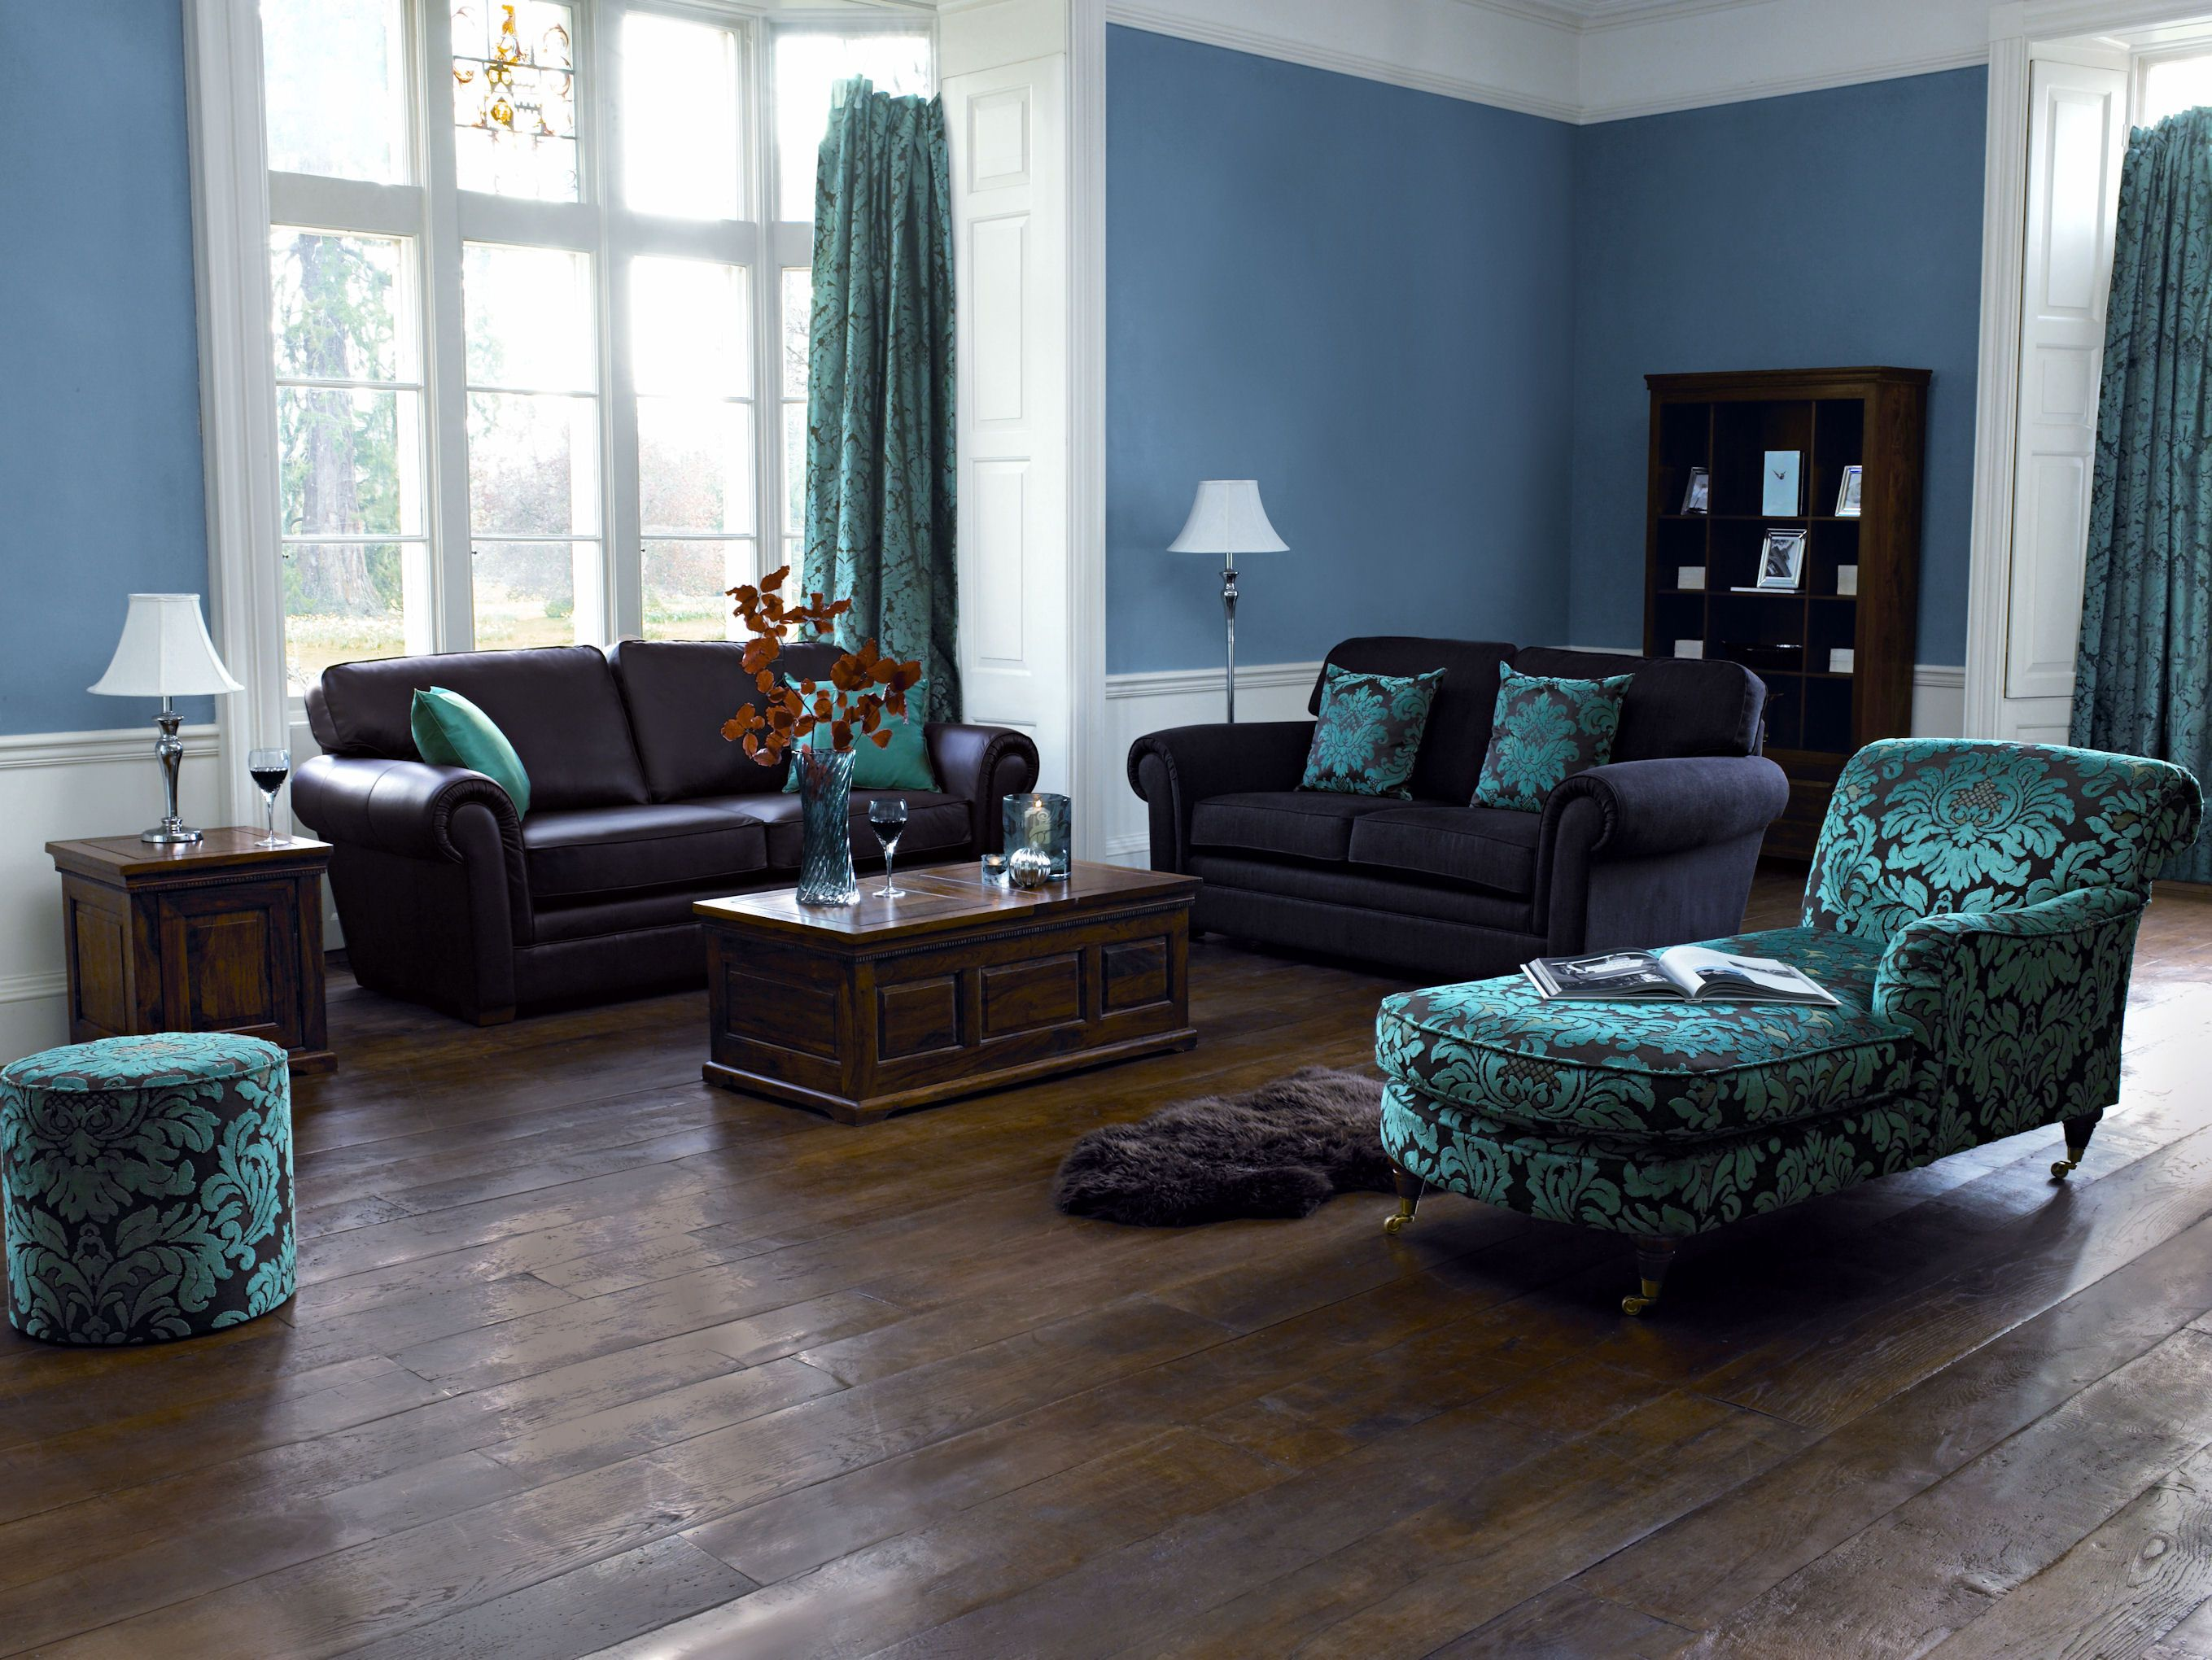 Blue Living Rooms Unique Blue Paint Color Ideas For Living Room With Dark Furniture And Review